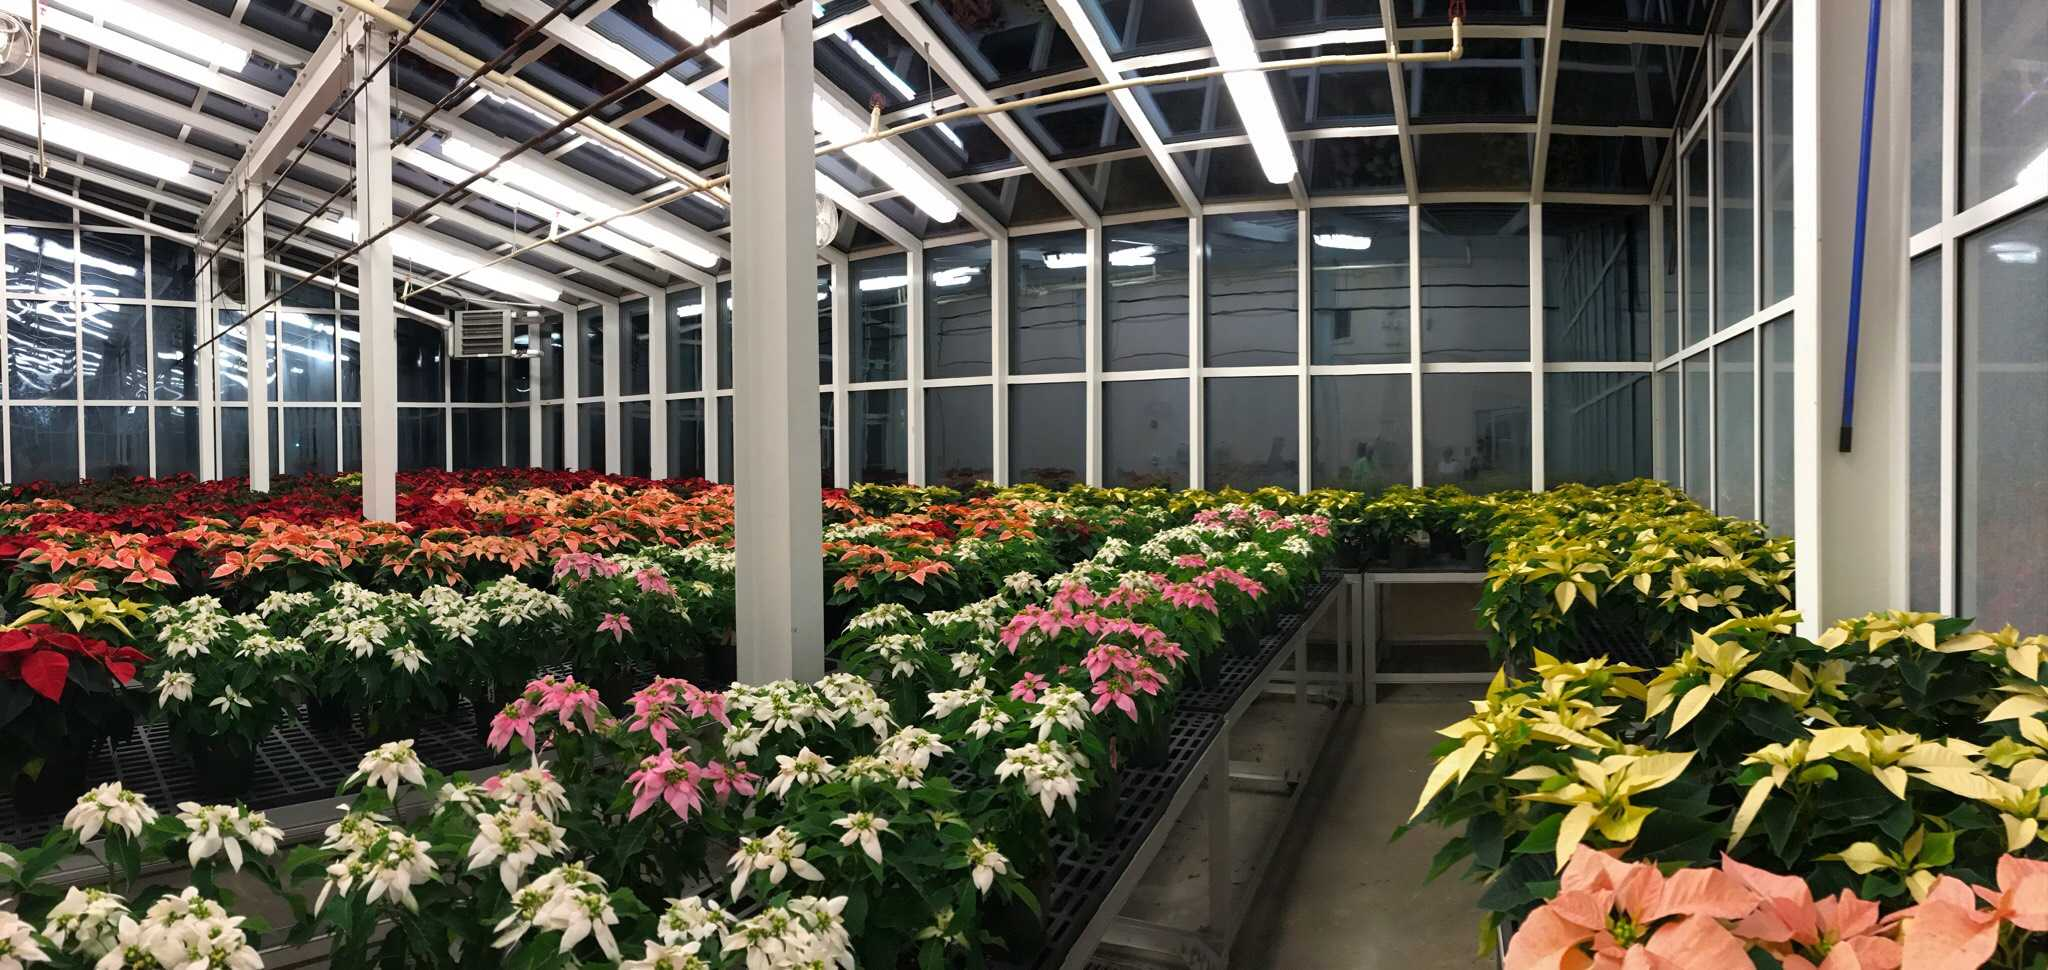 The poinsettias grown in the greenhouse.